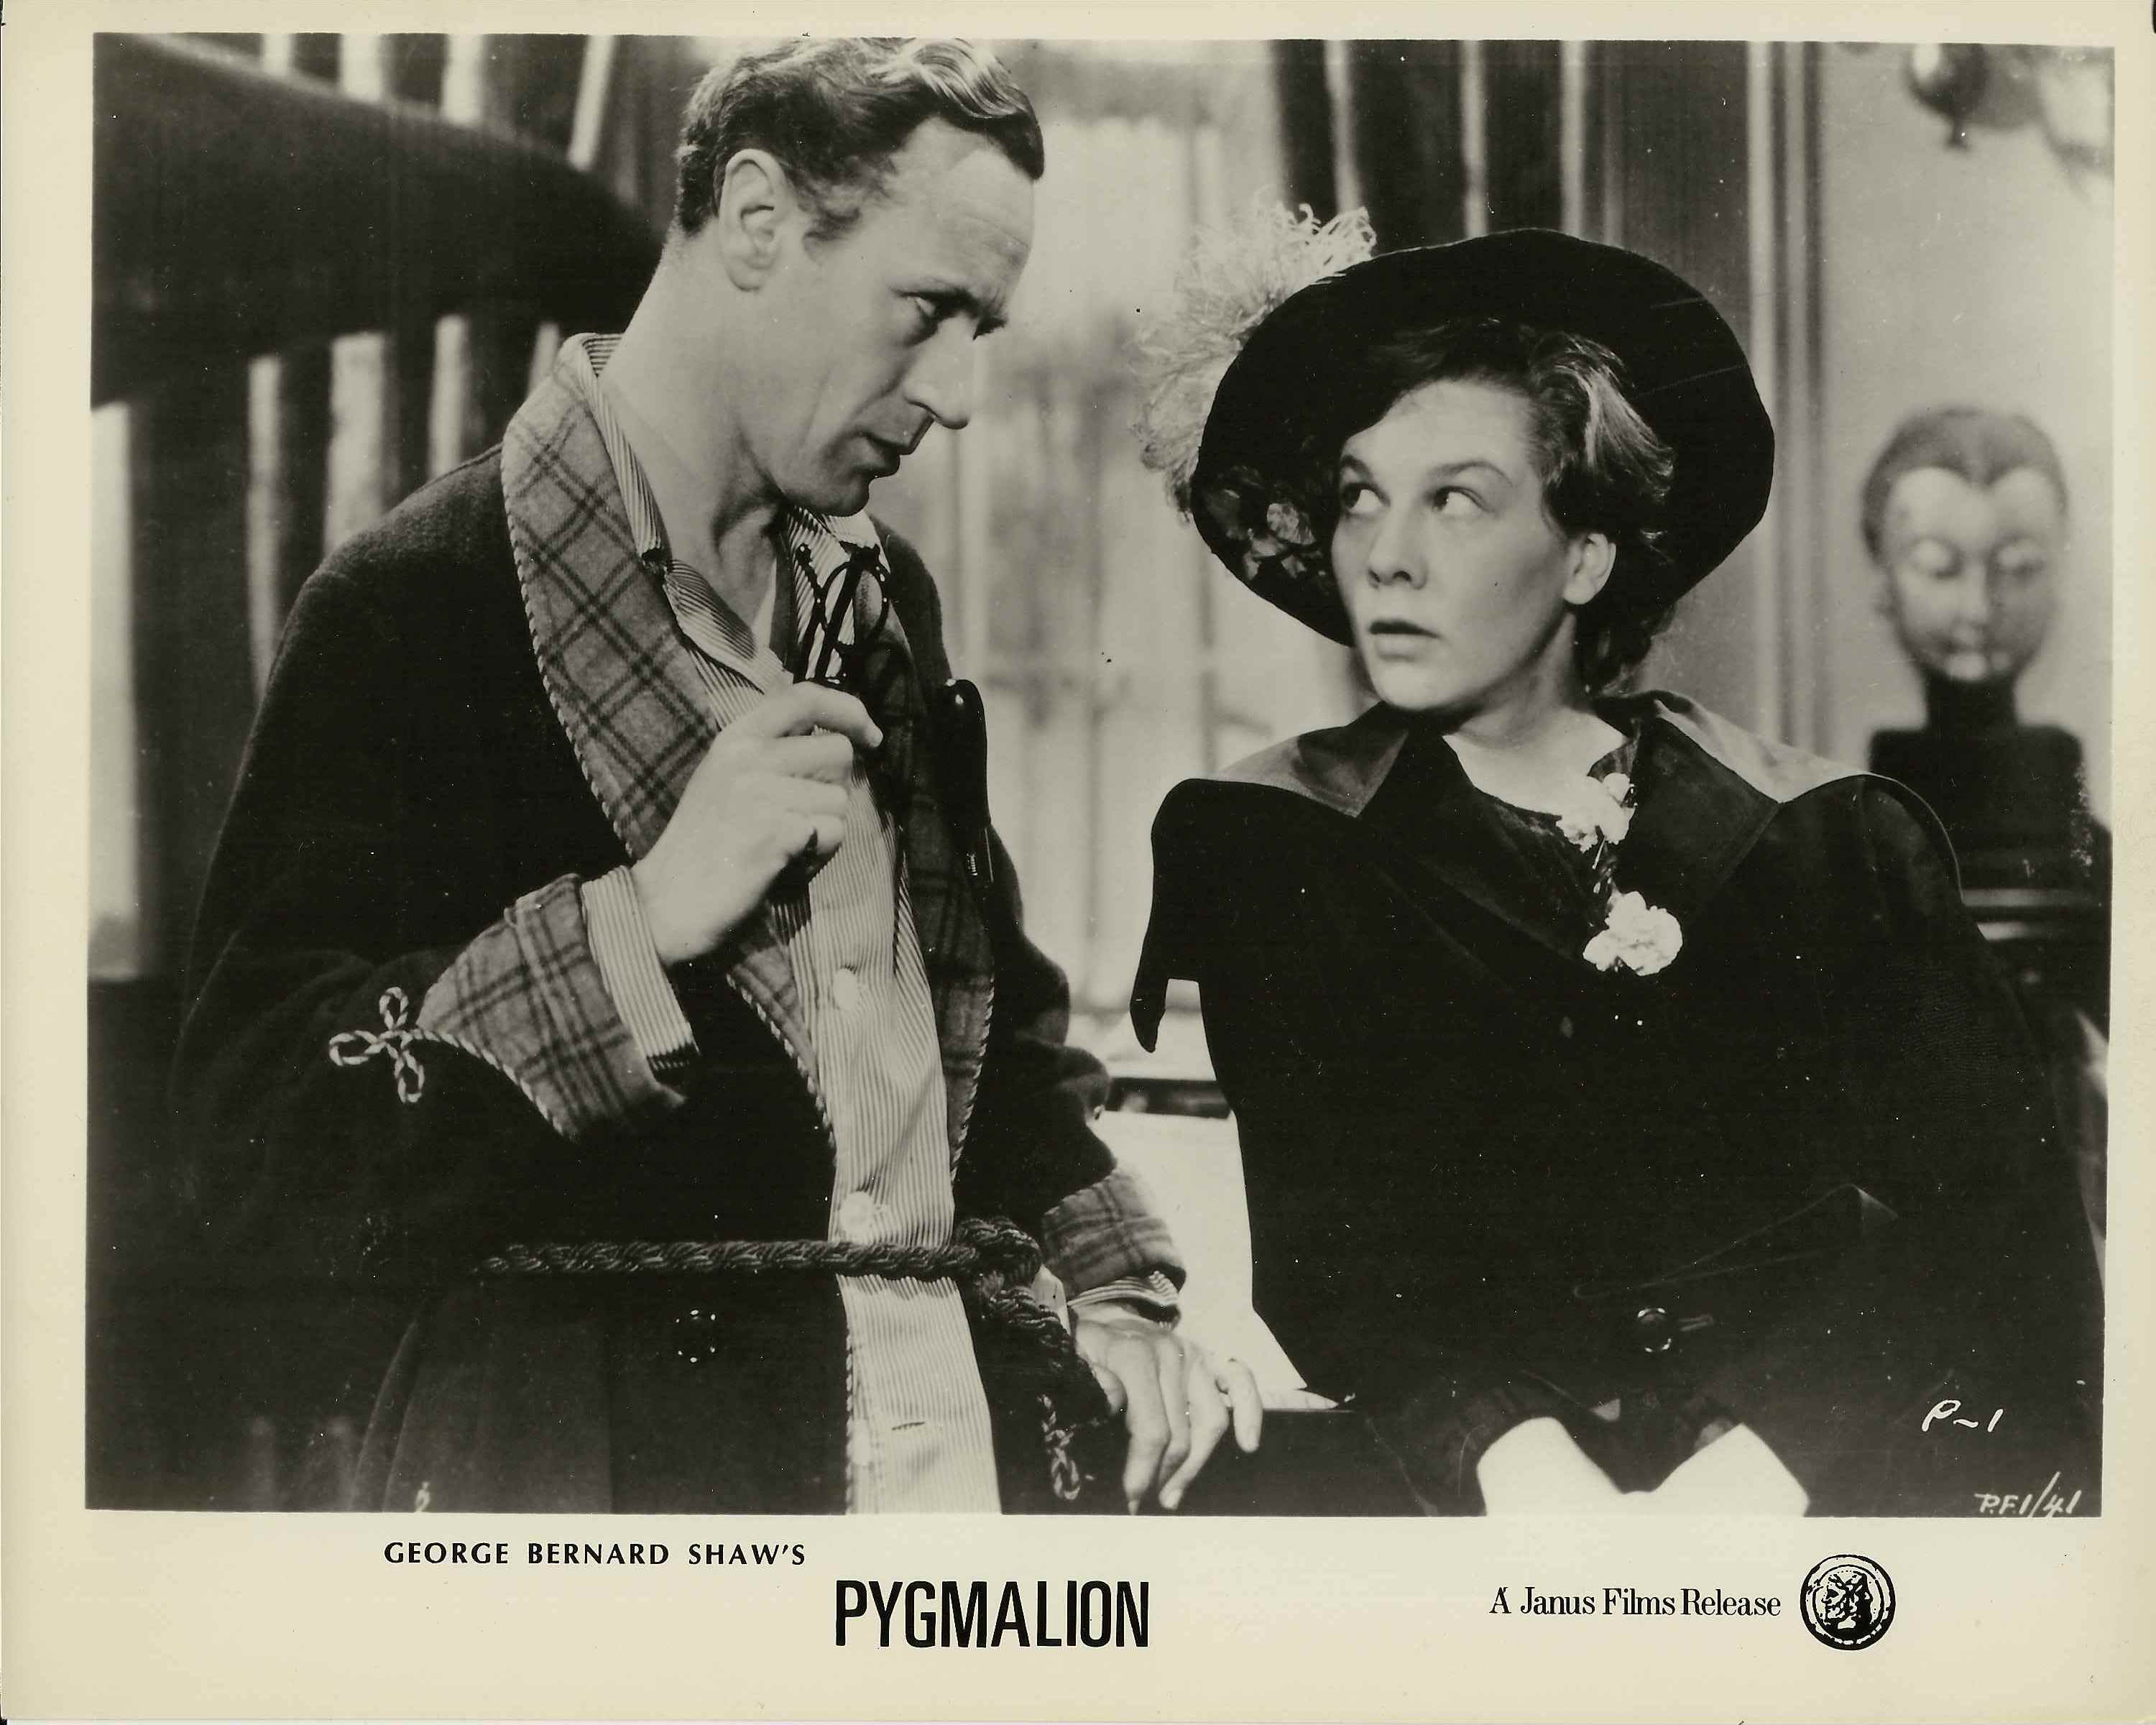 Professor Henry Higgins (Leslie Howard) makes his acquaintance with Eliza Doolittle (Wendy Hiller).